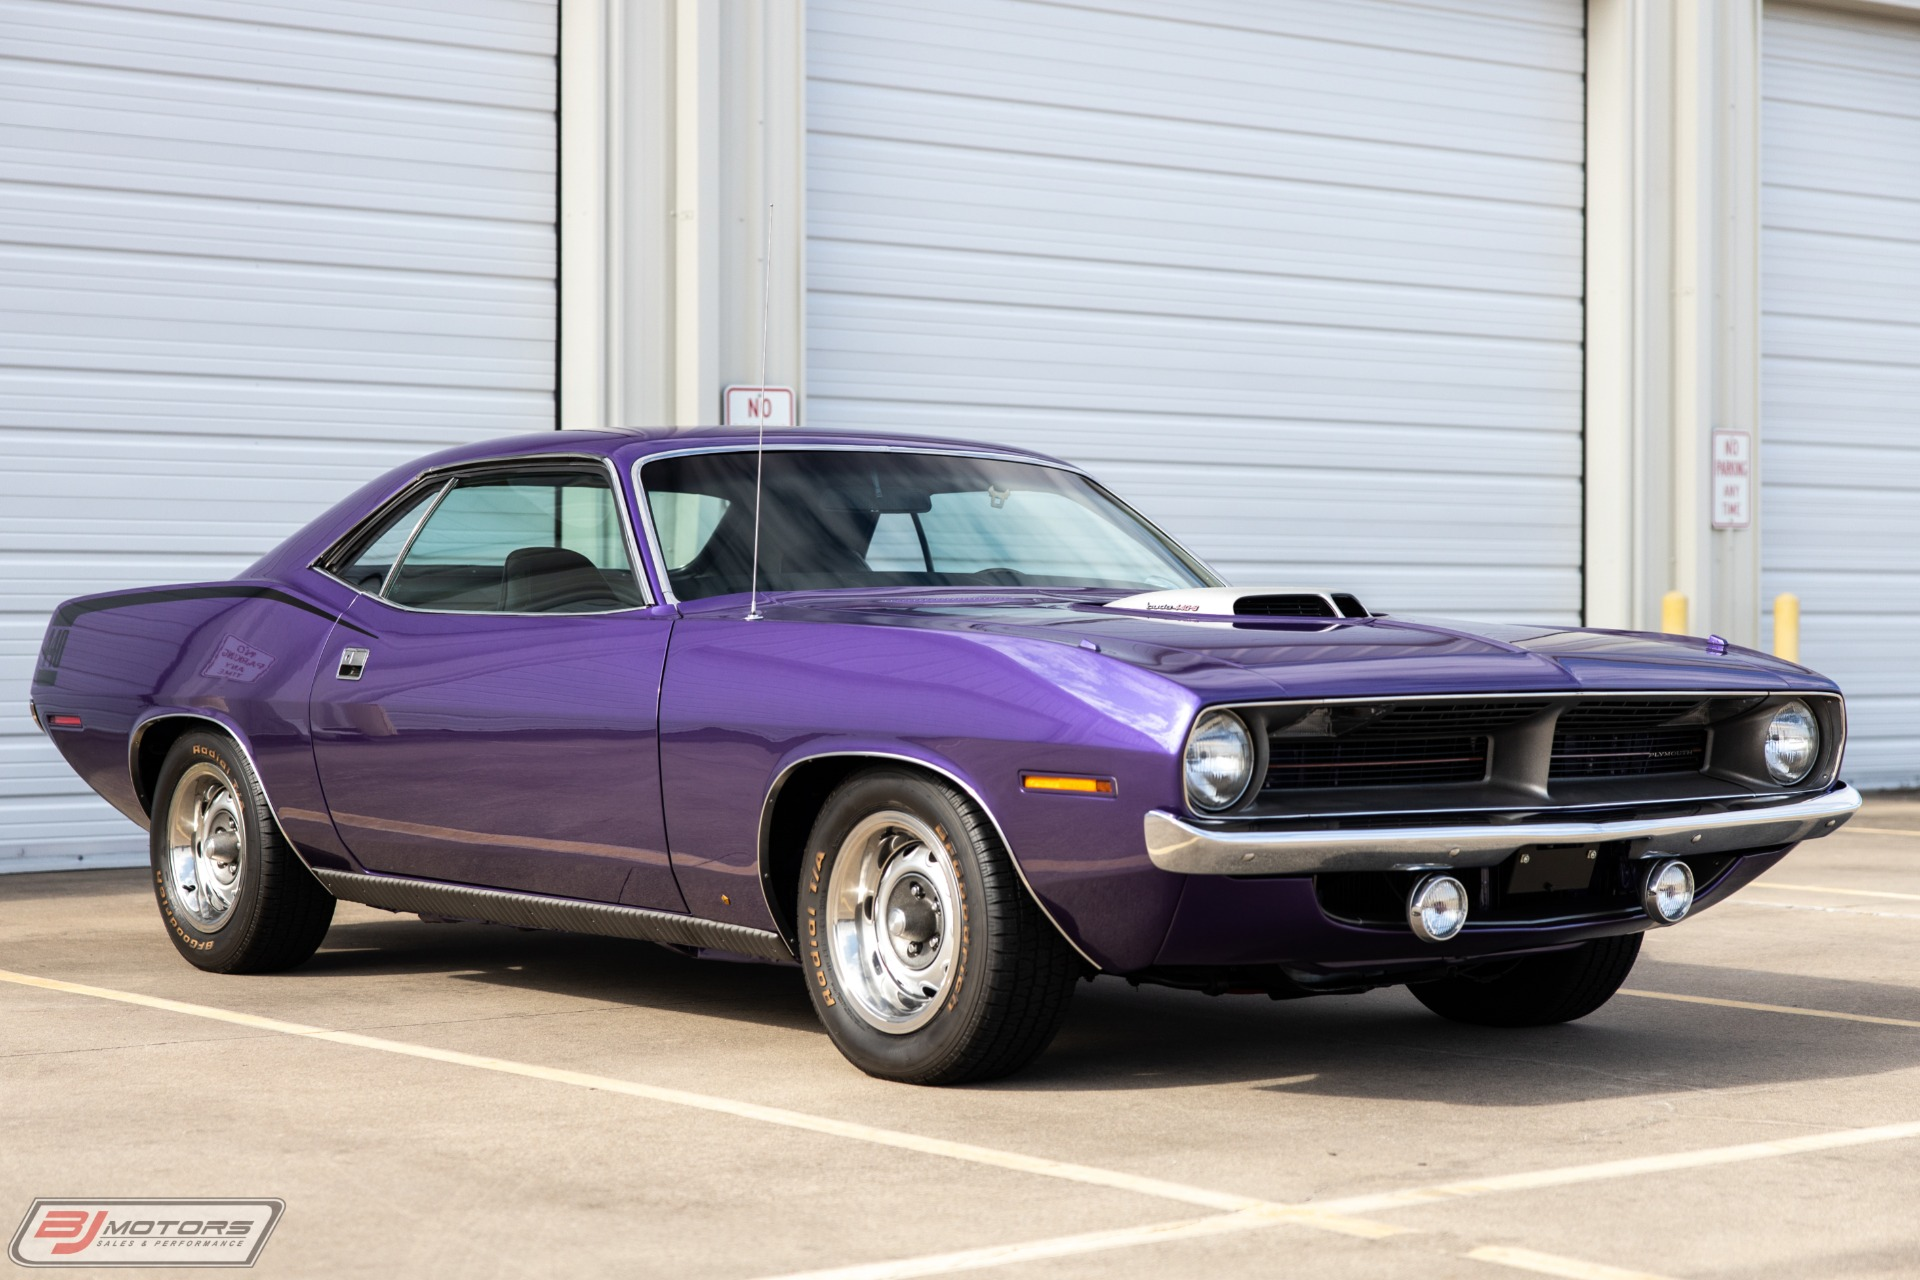 Used-1970-Plymouth-Barracuda-440-Six-Pack-in-Plum-Crazy-Purple